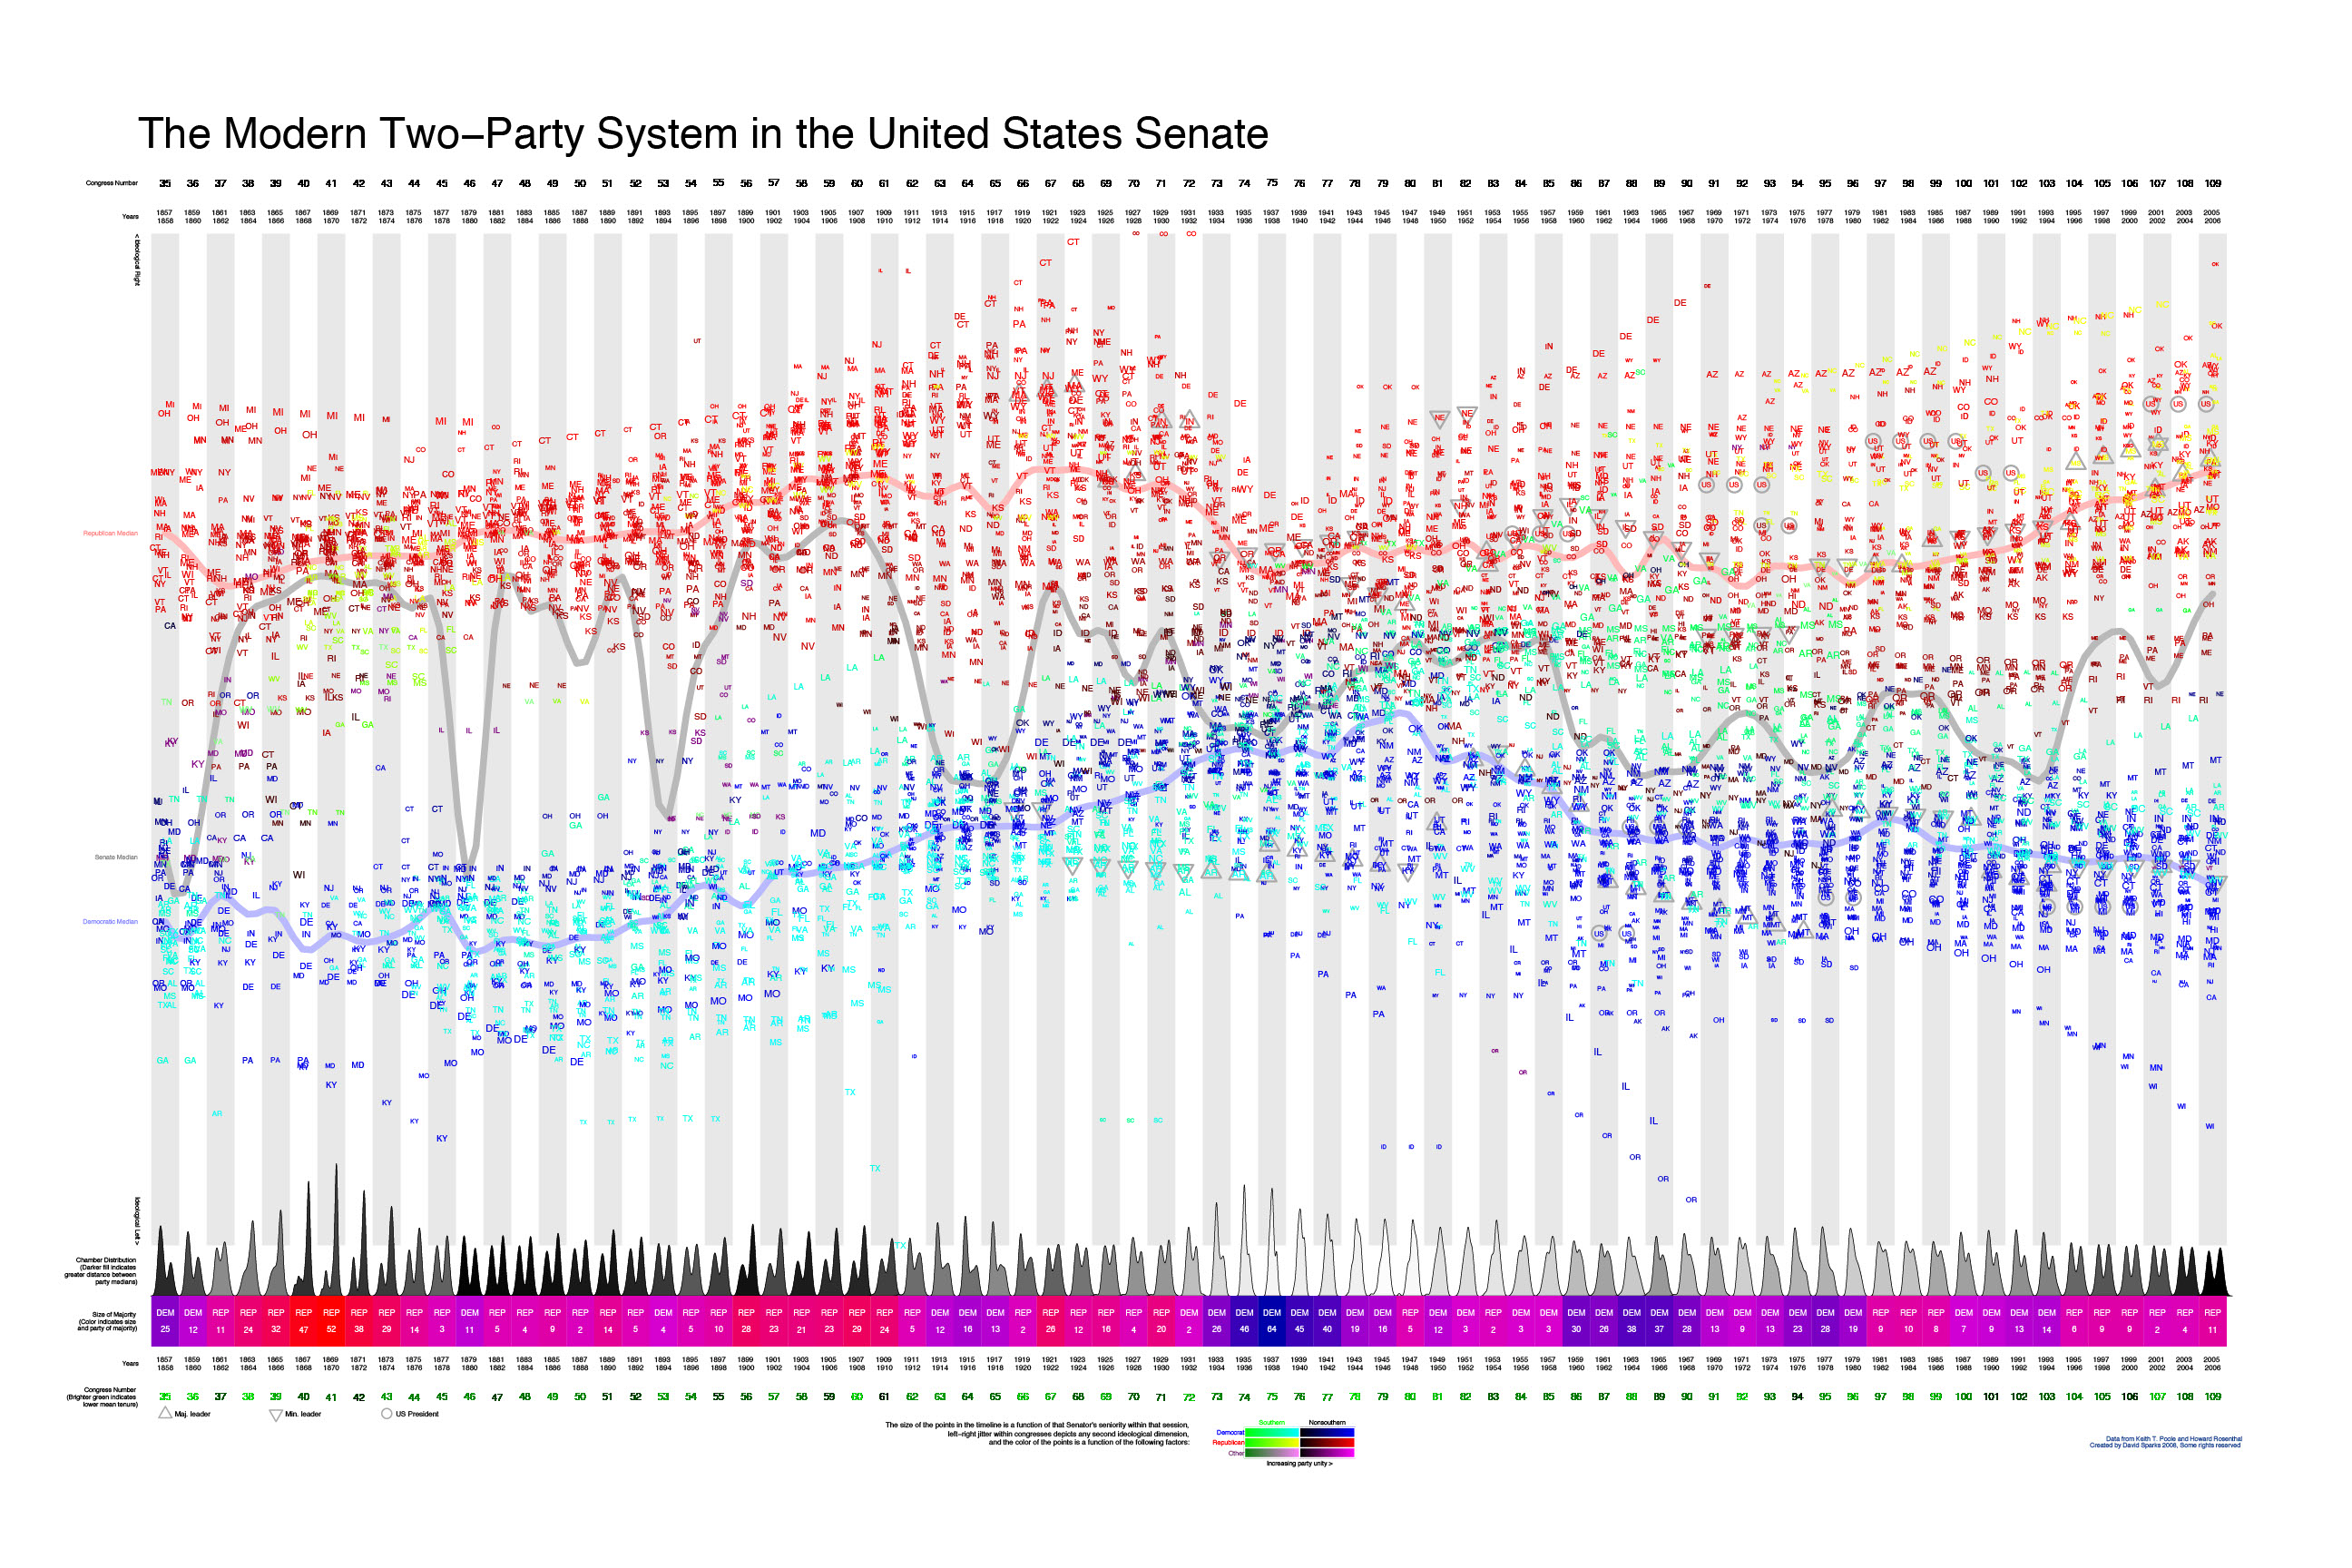 The Modern Two-Party System in the United States Senate